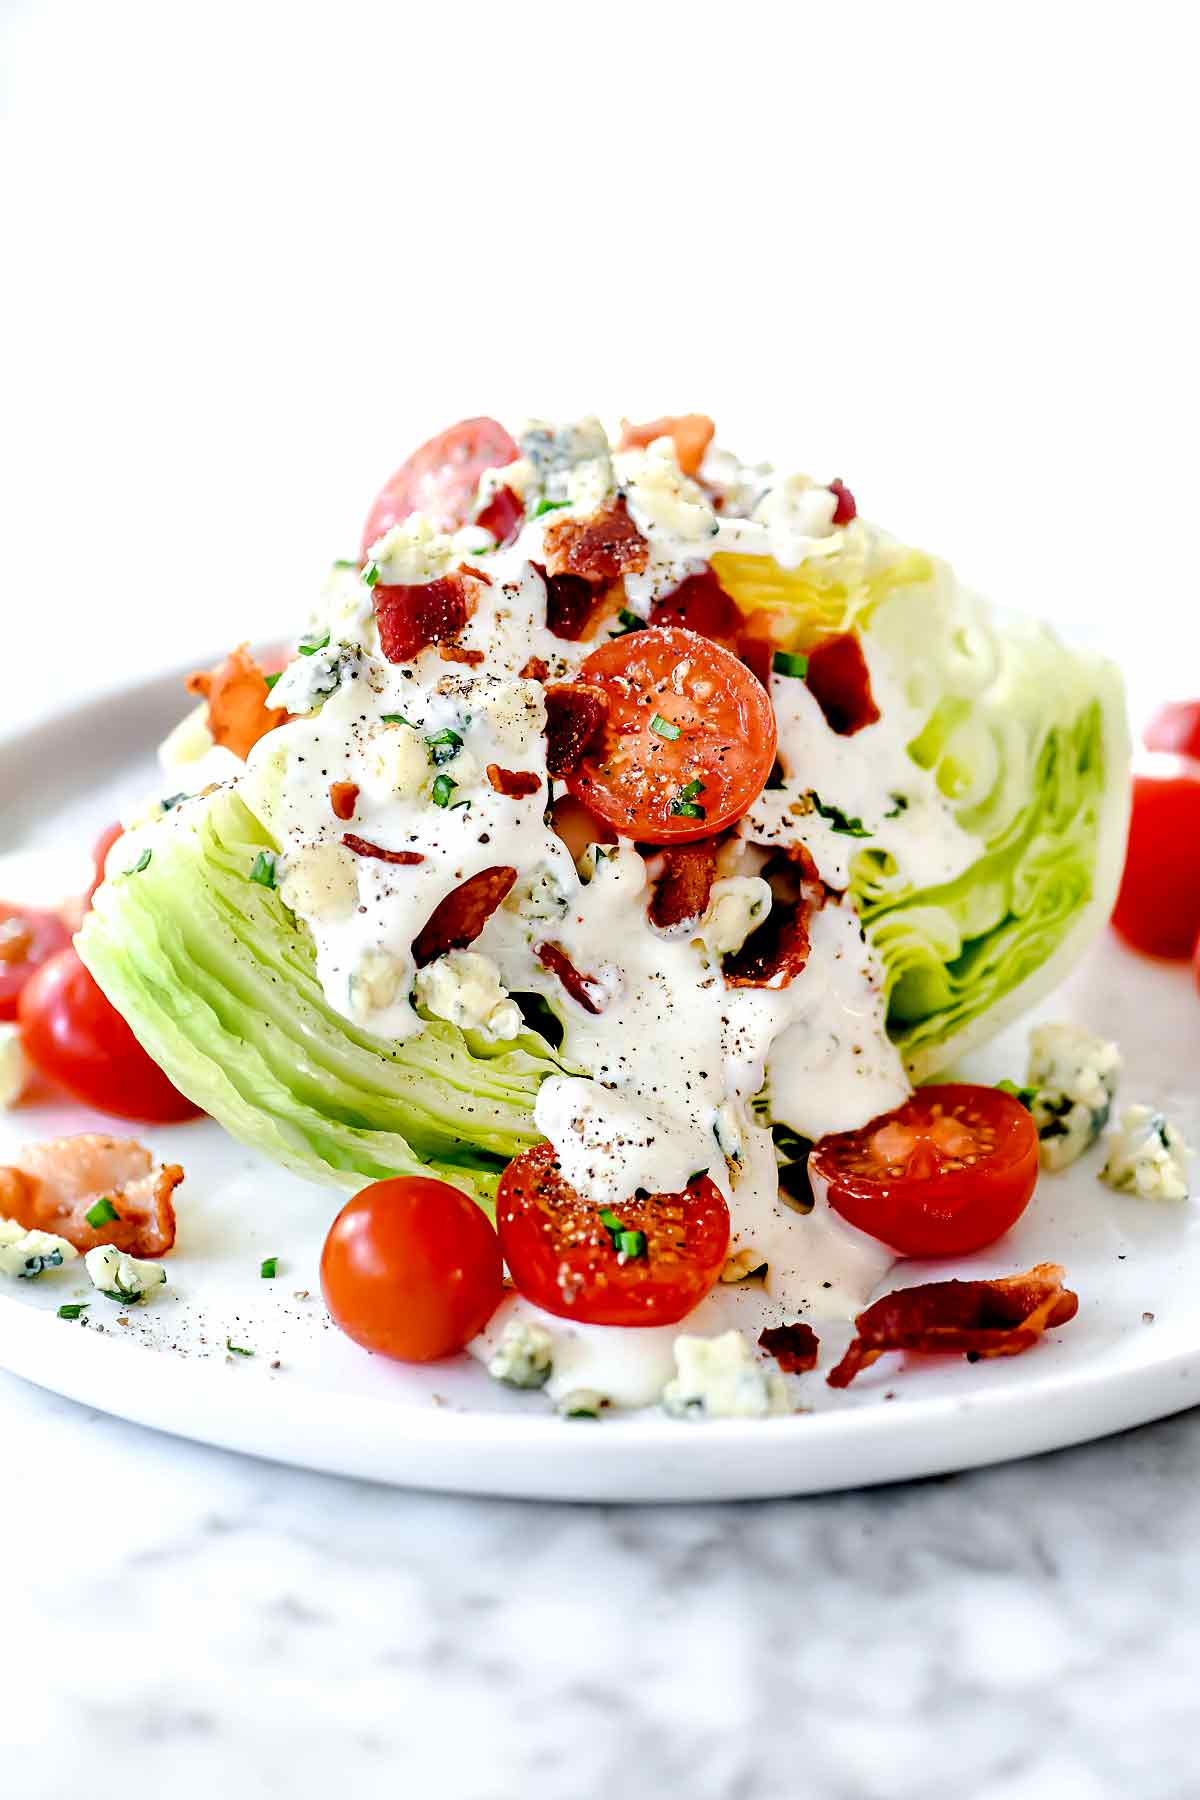 Classic Wedge Salad Homemade Blue Cheese Dressing Foodiecrush